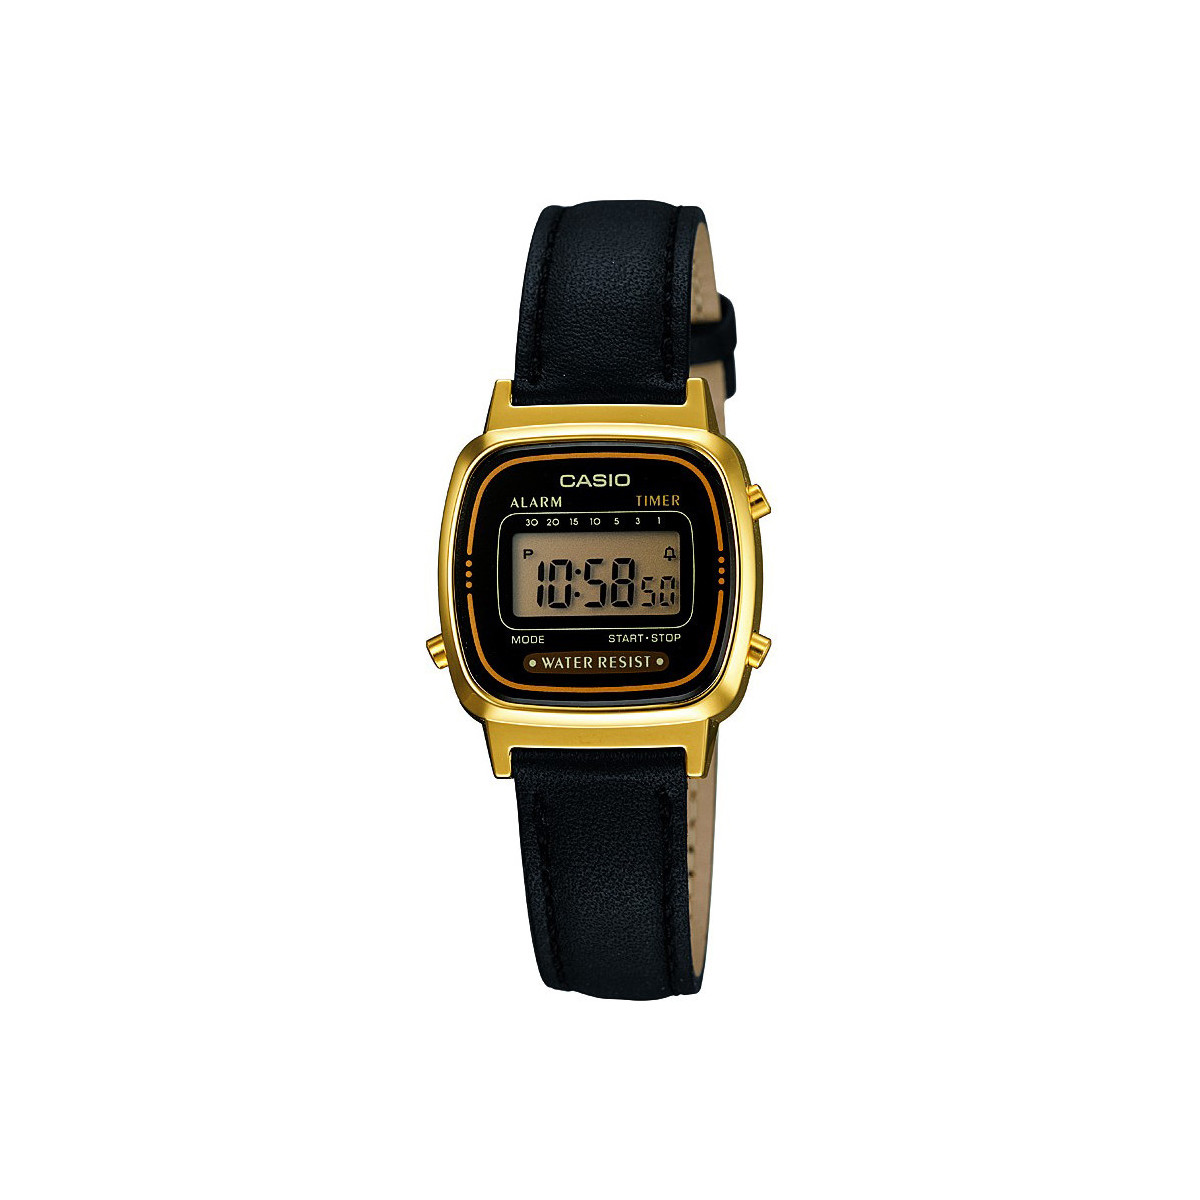 casio montre retro vintage la670wegl 1ef montre retro cuir femme montres bijoux montre. Black Bedroom Furniture Sets. Home Design Ideas